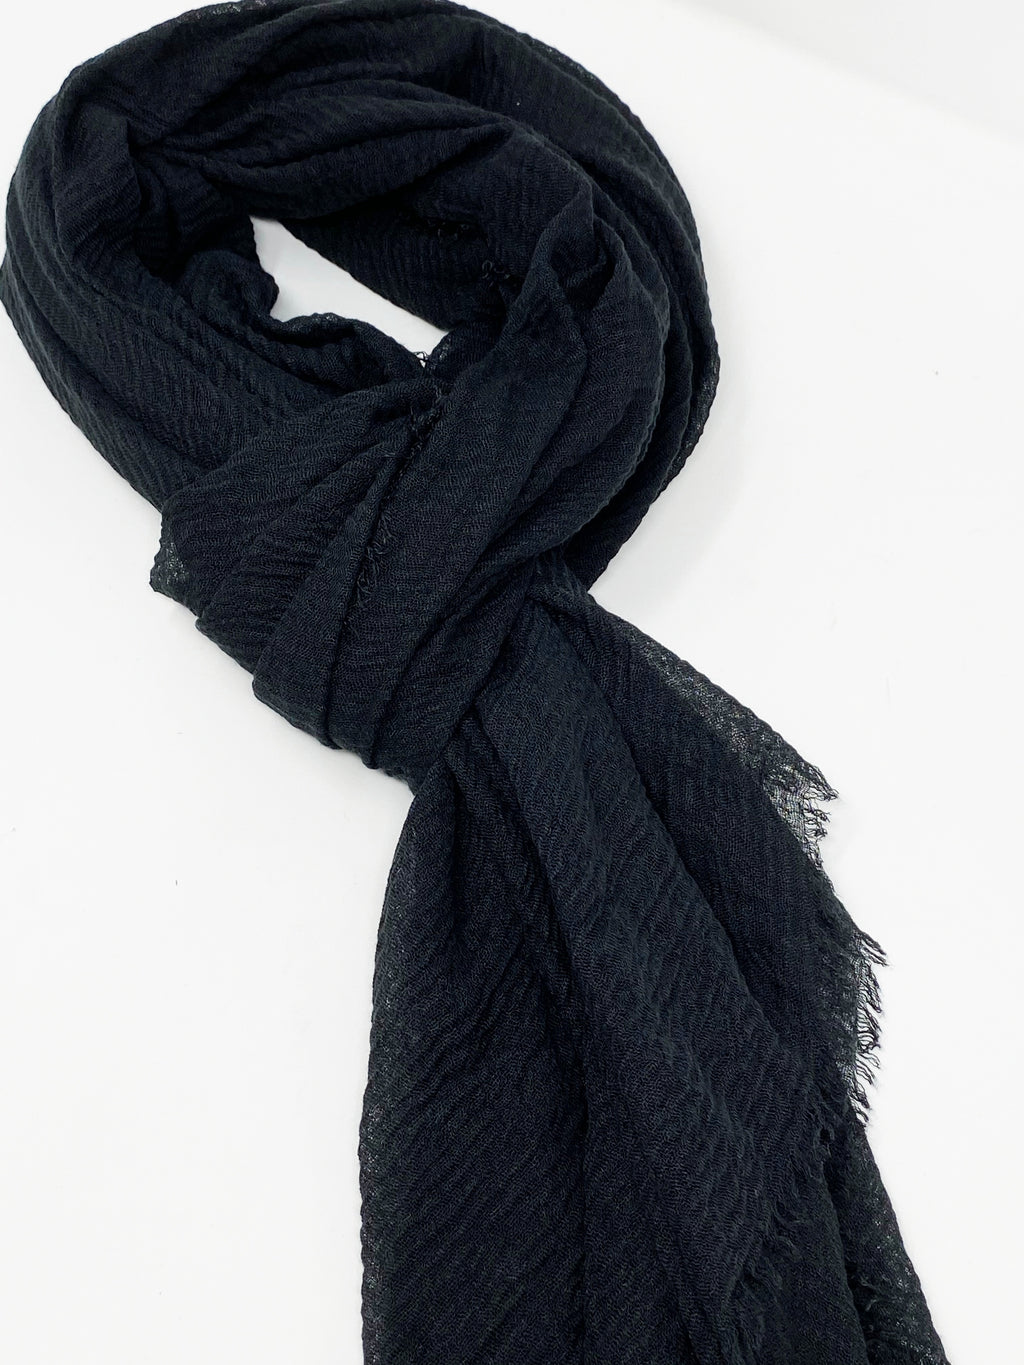 Boho Scarf in Black